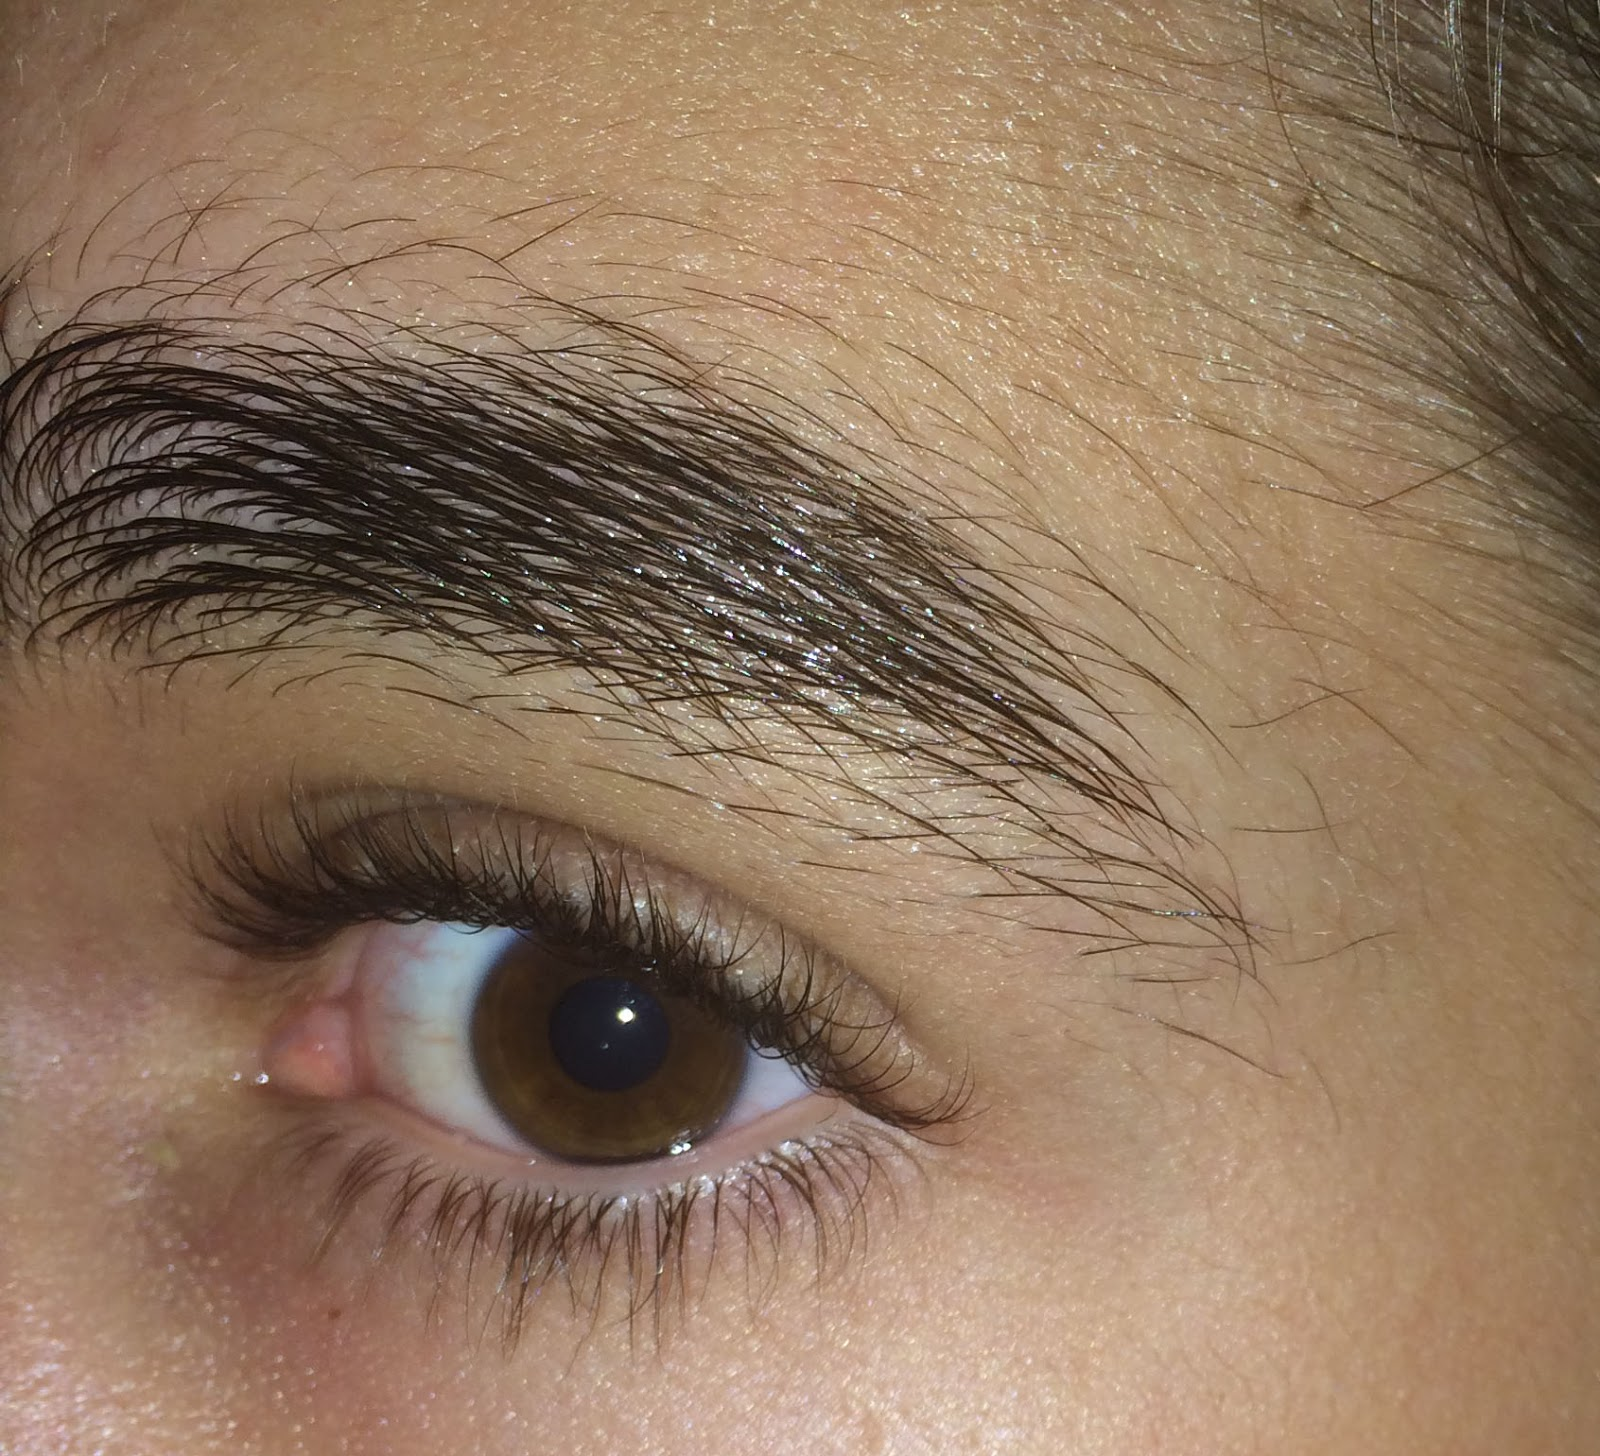 Rapid Brow My Review In Pictures Reviews By Ellis